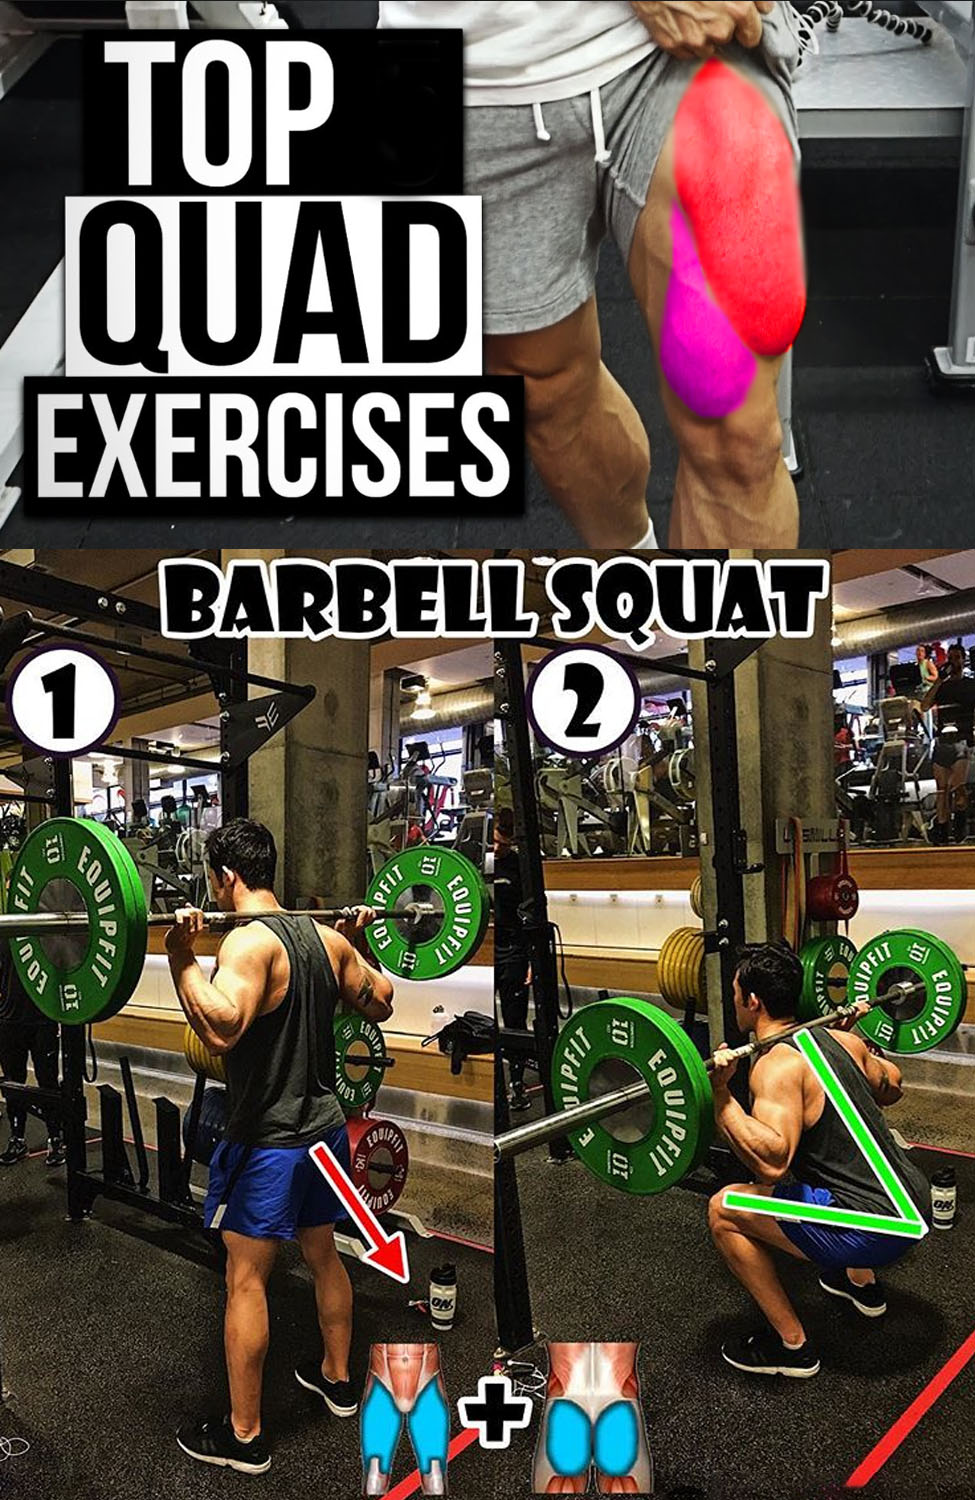 The Barbell Squat